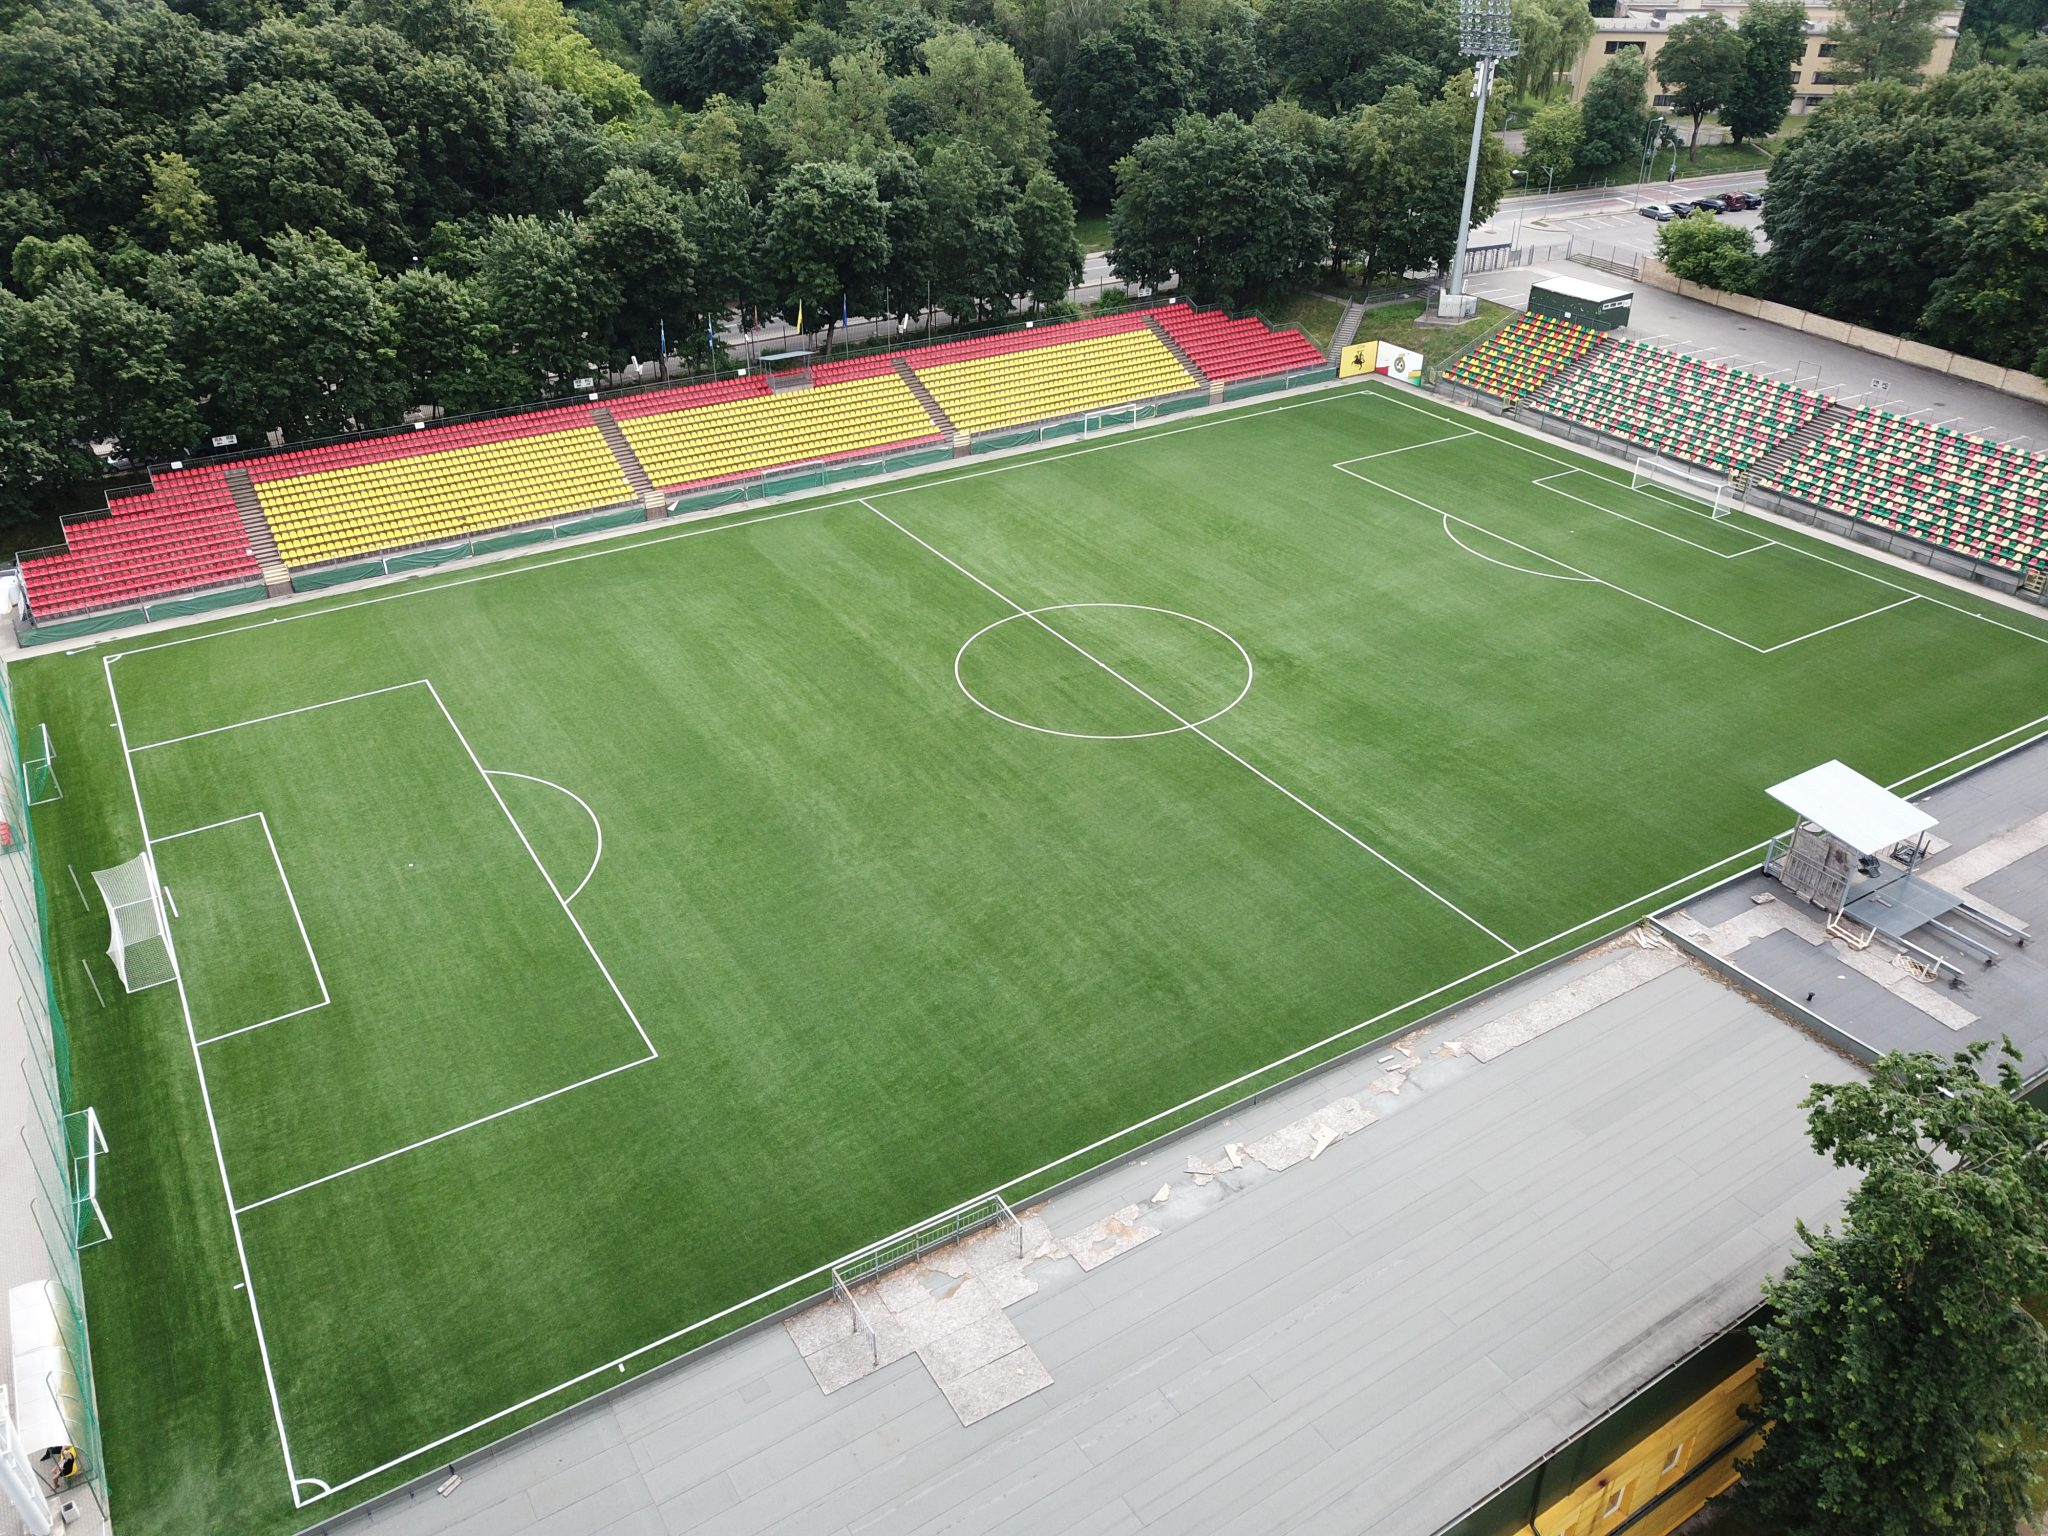 Choosing your turf supplier